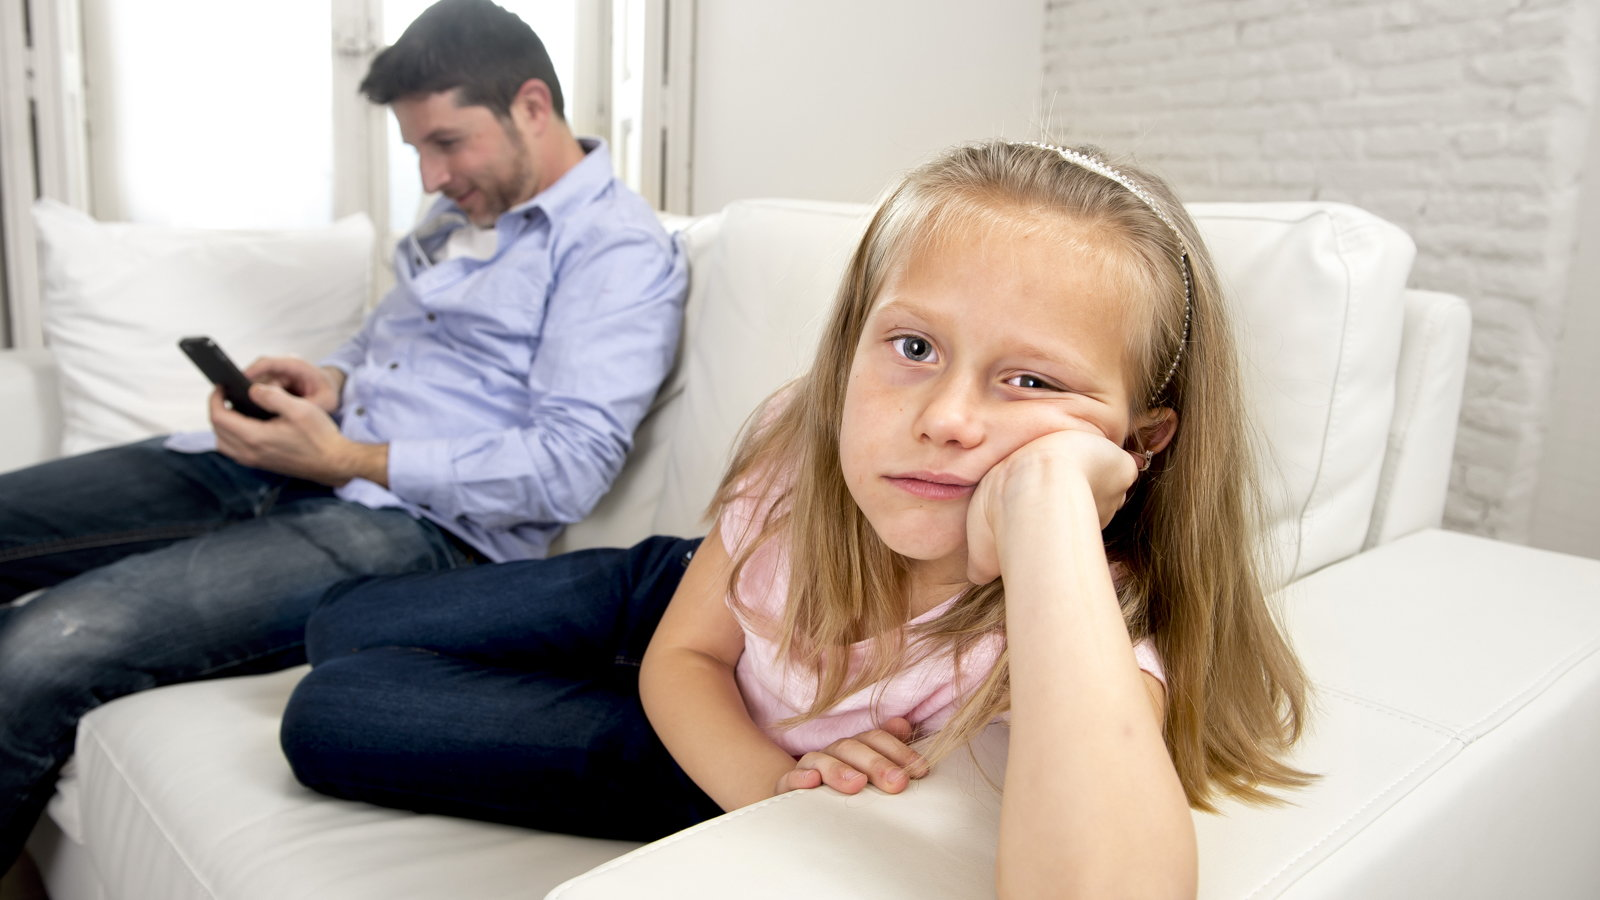 girl being ignored while dad plays on smartphone